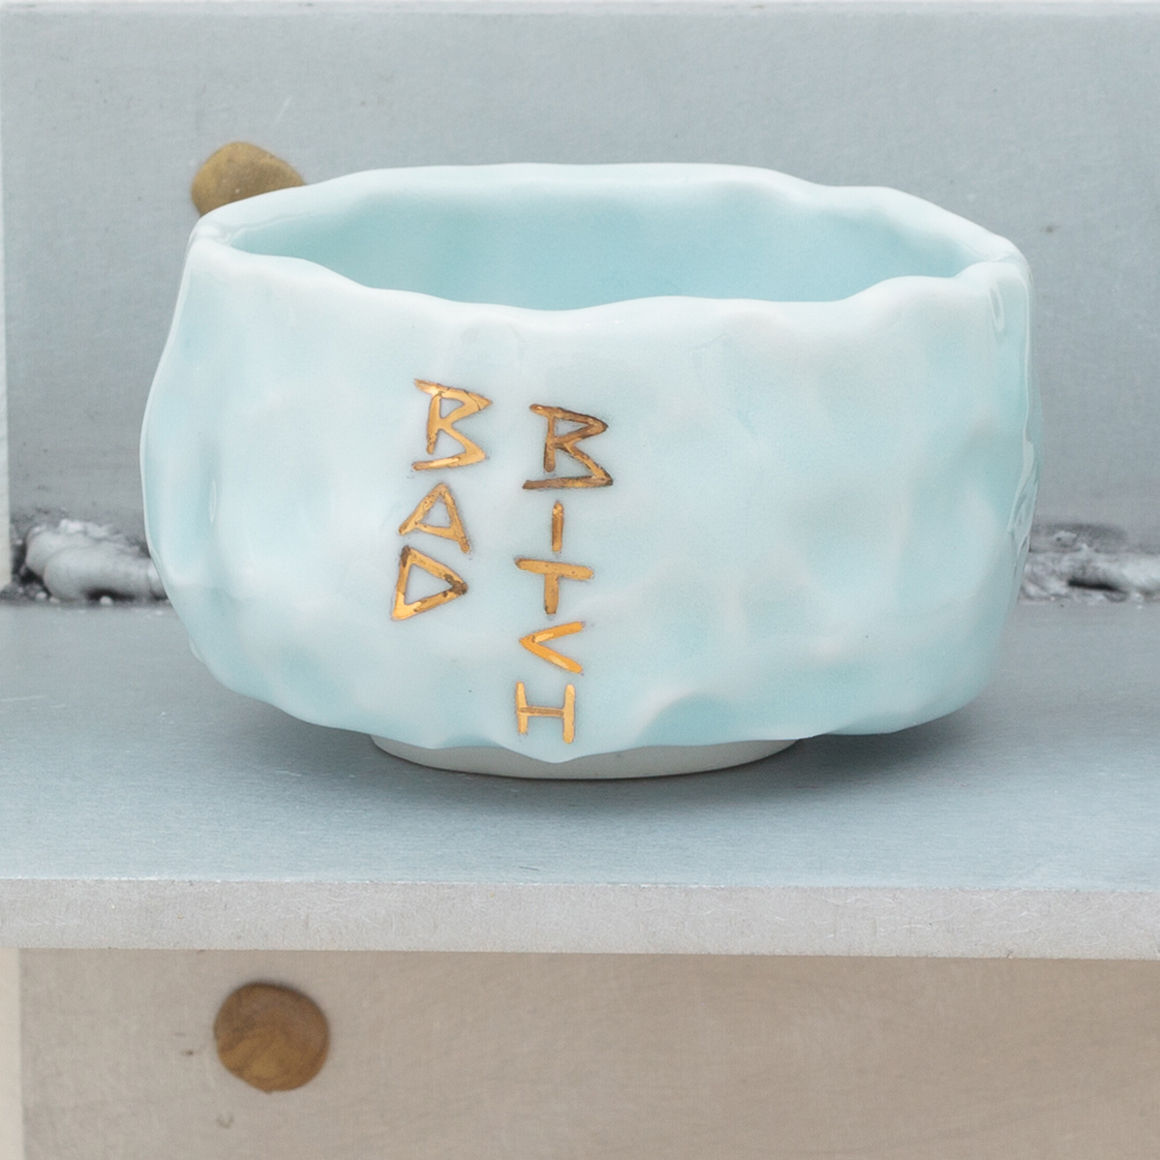 <p><em>Bad Bitch Cup (3)</em><span class='media'>Glazed porcelain, gold luster, aluminum, Sculpey clay</span>2.1625 x 2.75 x 2.75 in (5.5 x 7 x 7 cm)<br>2016<br><a class='inquire' href='mailto:info@gildargallery.com?subject=Artwork Inquiry PWAS0004&body=I am interested in finding out more about Bad Bitch Cup (3) by Patrice Renee Washington'>Inquire</a></p>